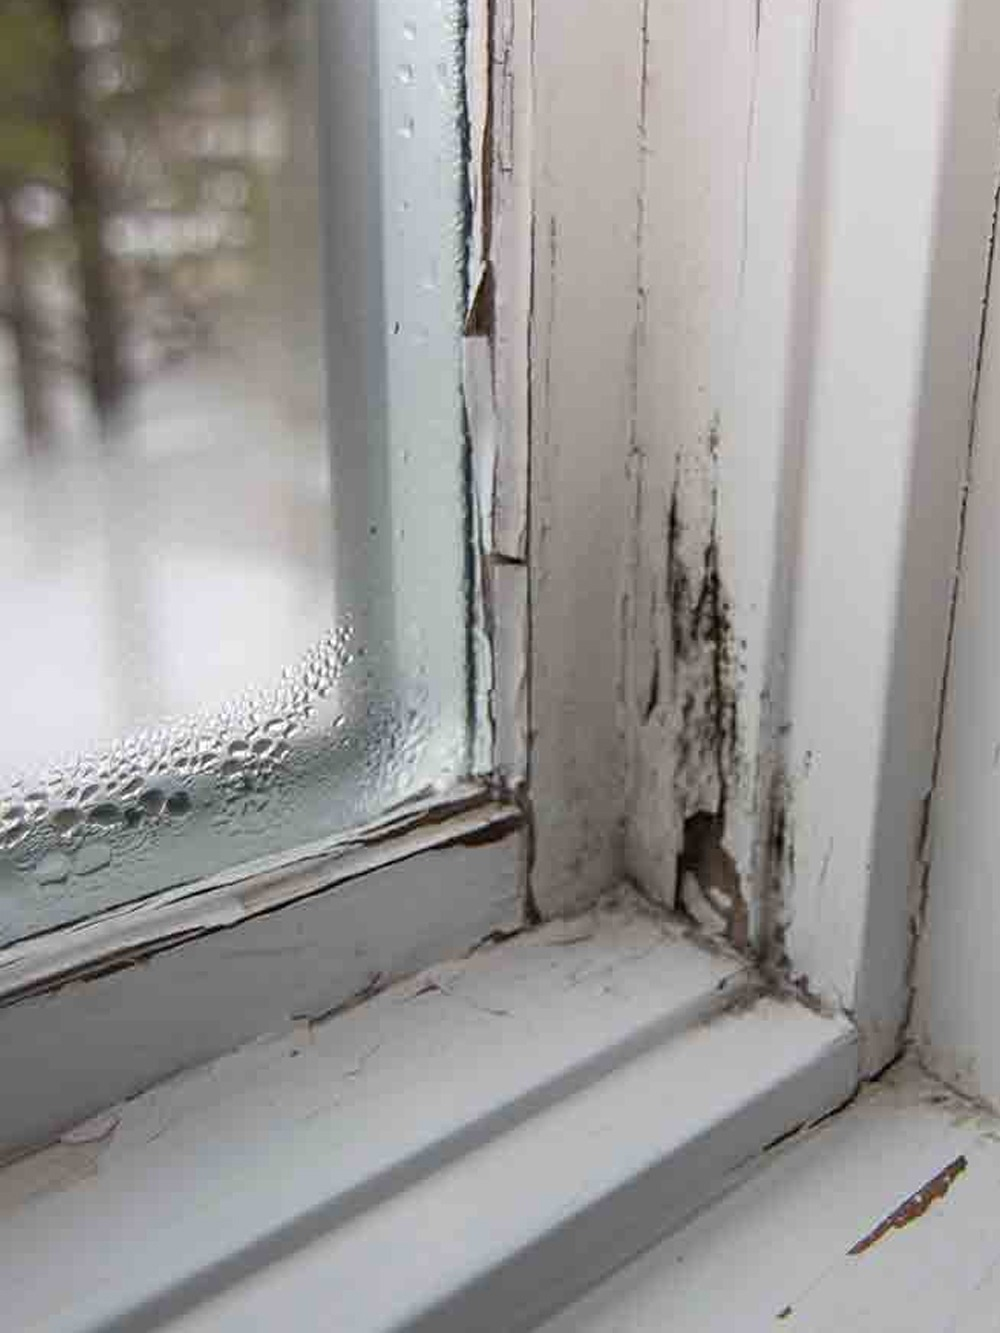 Home Air Quality Testing - Window Condensation